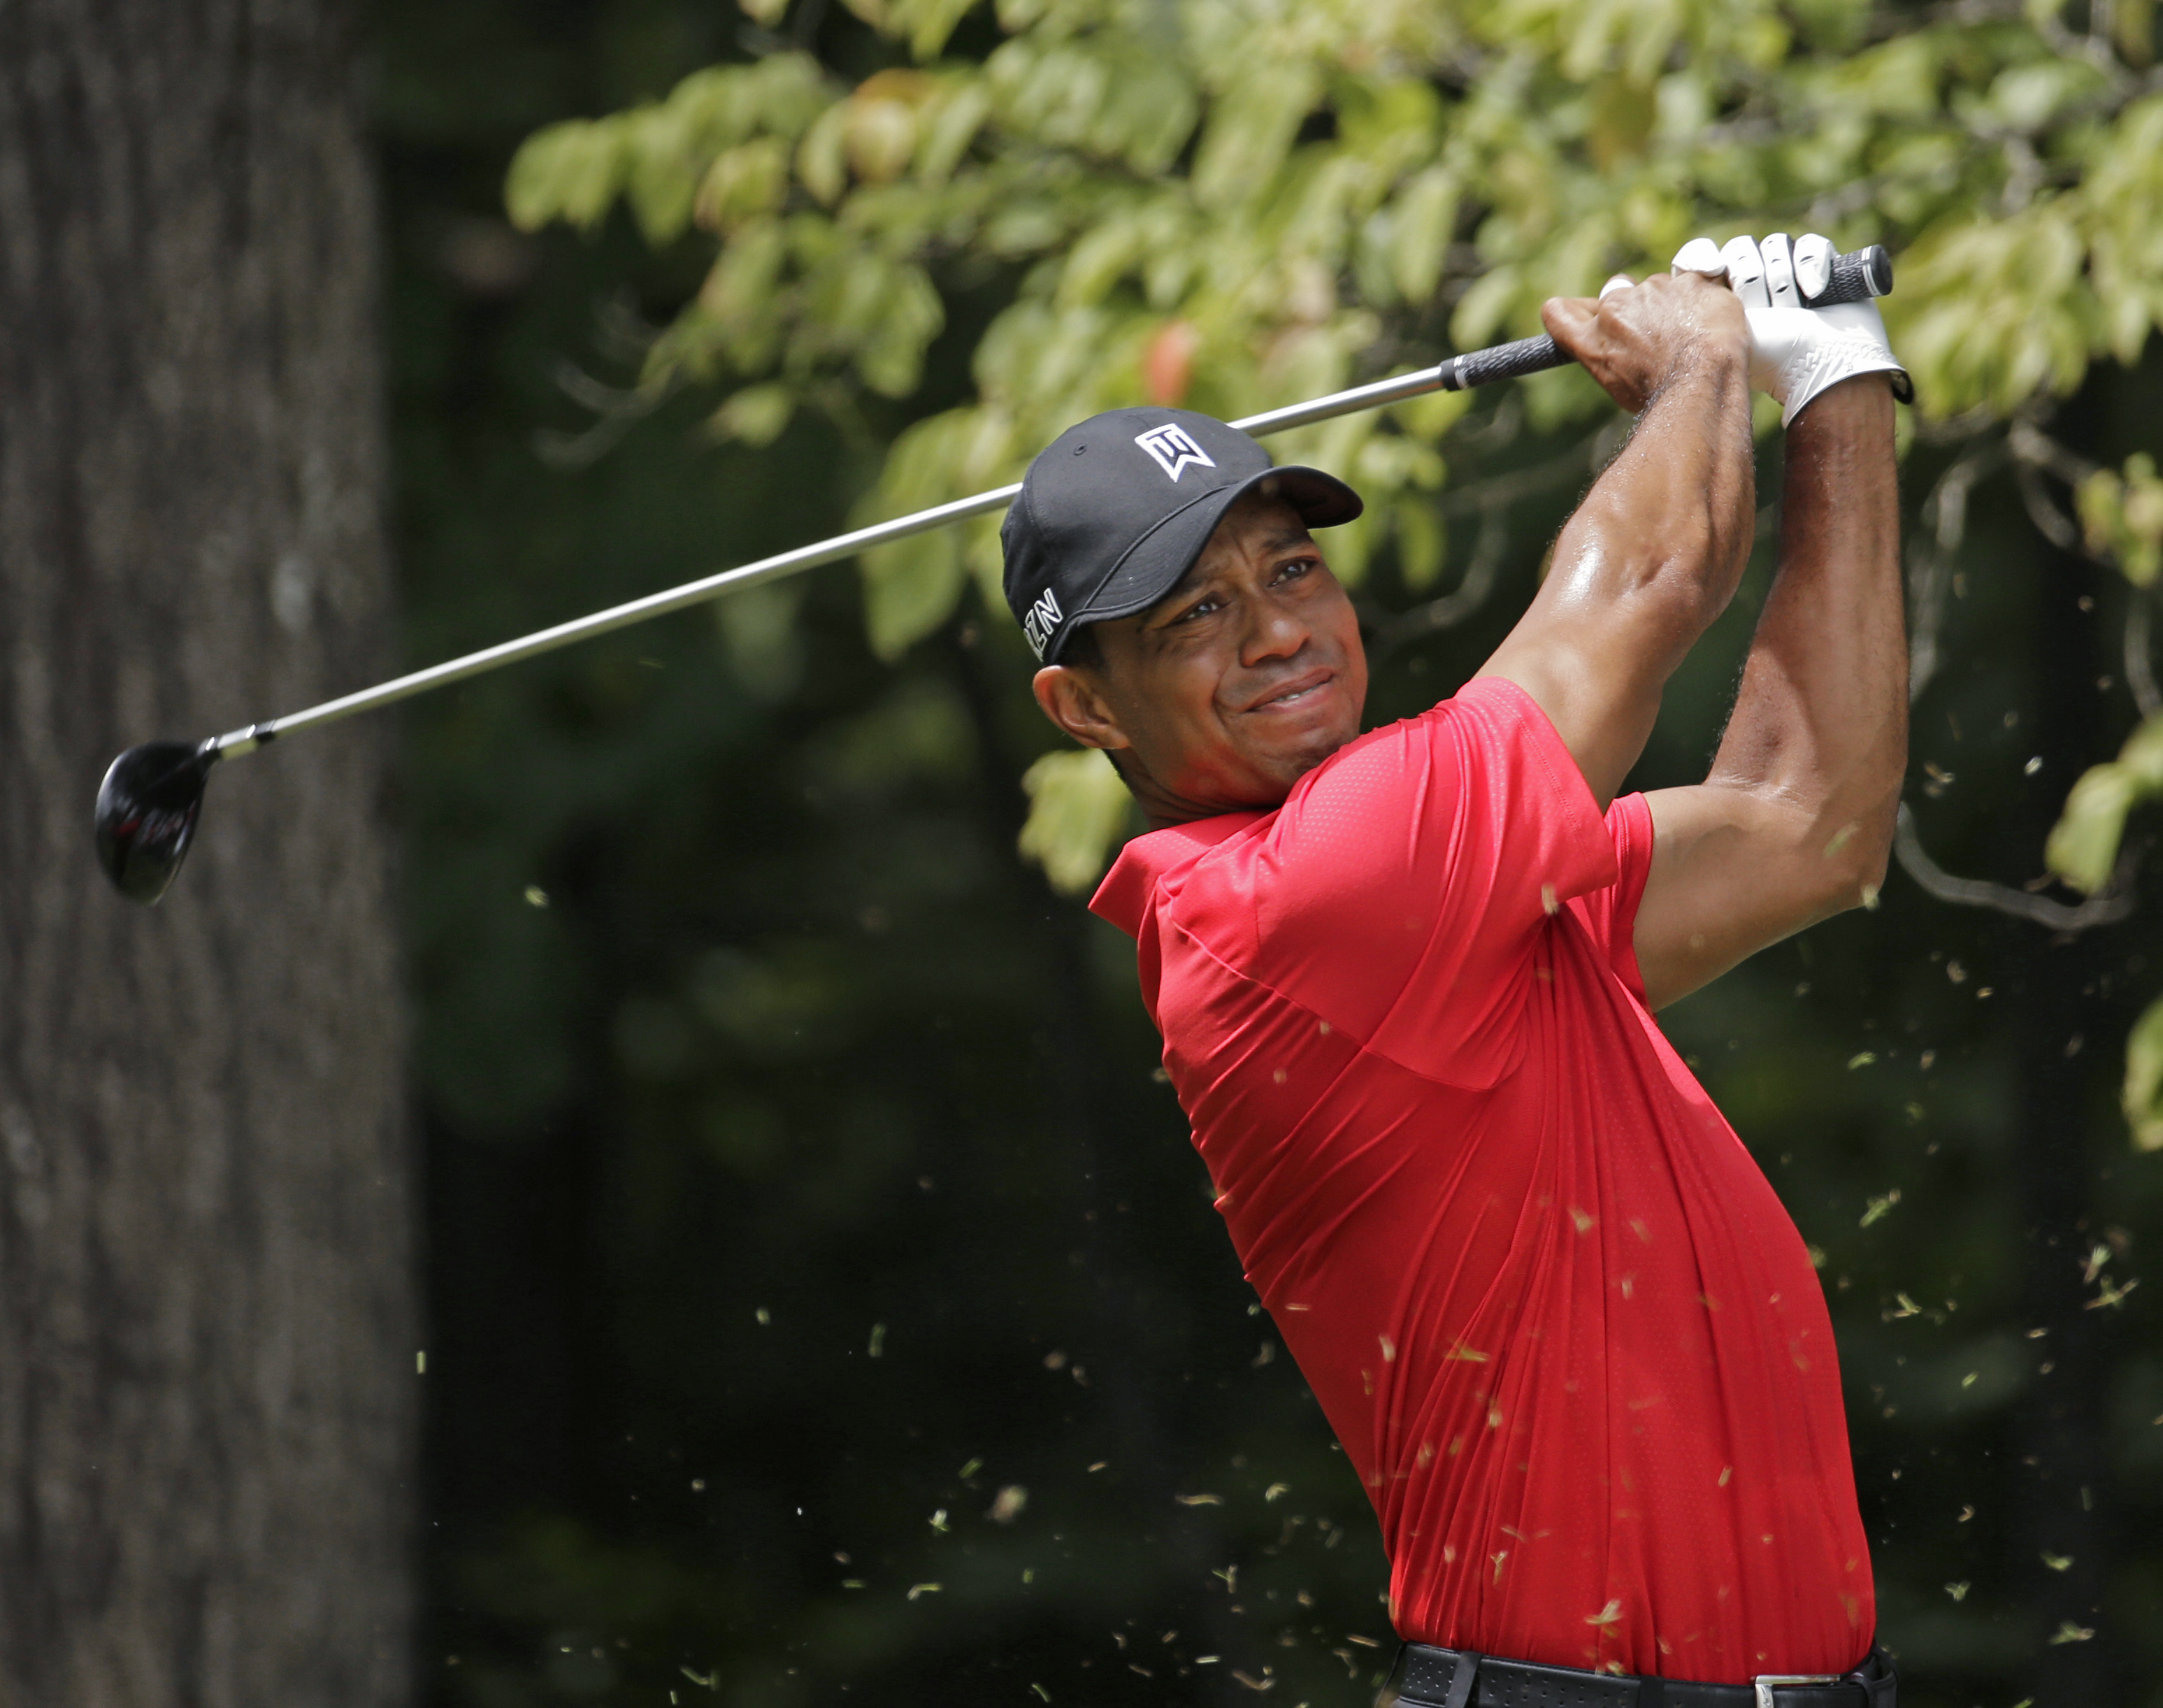 Tiger Woods watches his tee shot on the second hole during the final round of the Wyndham Championship golf tournament at Sedgefield Country Club in Greensboro, N.C., Sunday, Aug. 23, 2015. (AP Photo/Chuck Burton)